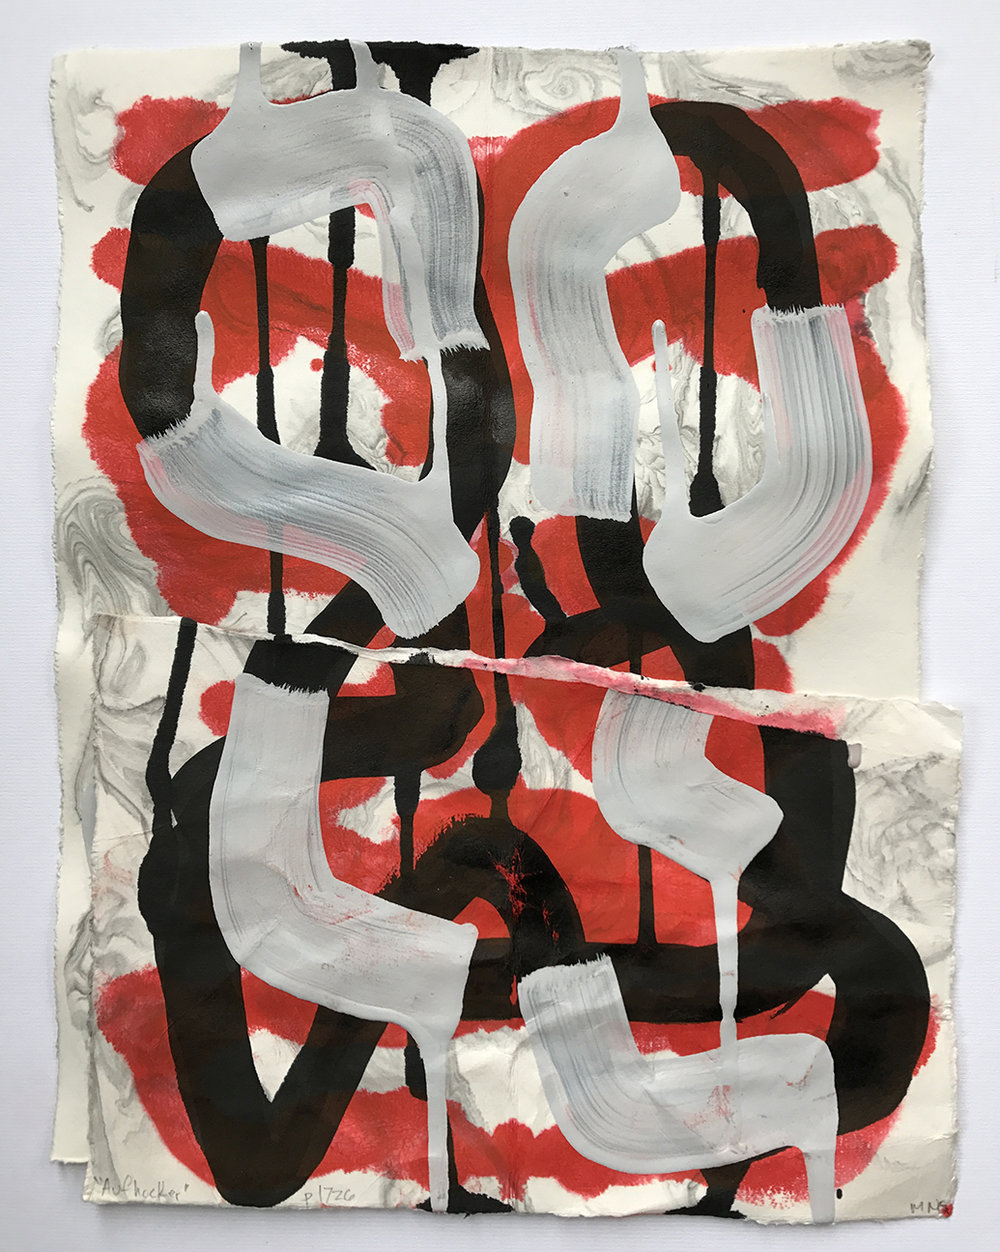 Aufhocker p1726, 2017, acrylic, ink, and collage on paper, 14 x 10.5 inches